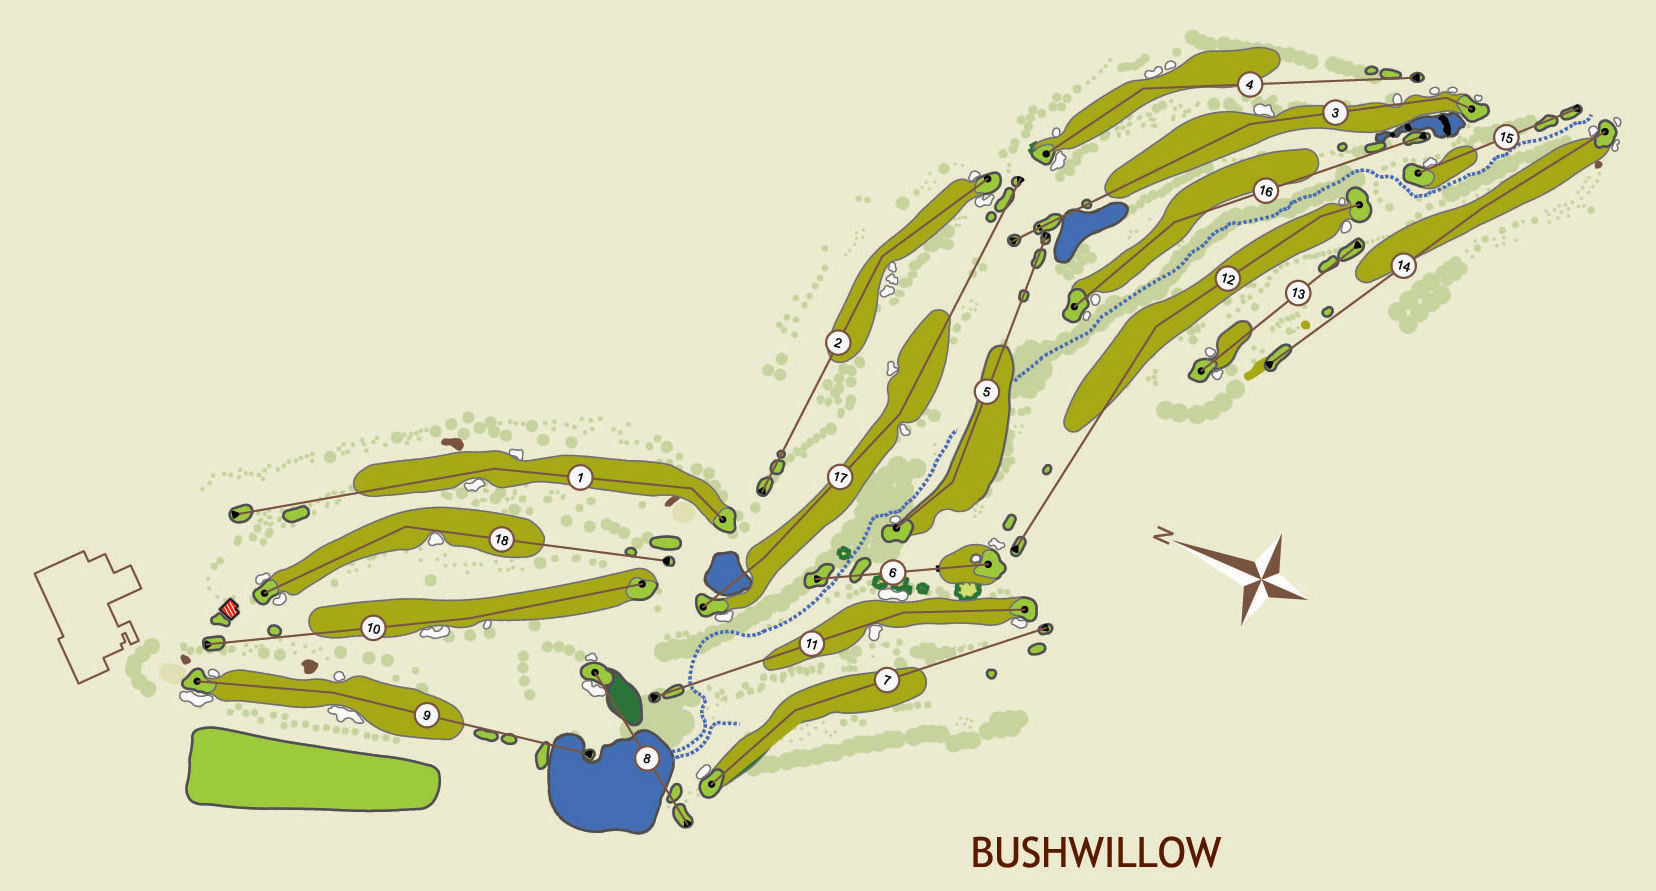 Bushwillow course layout